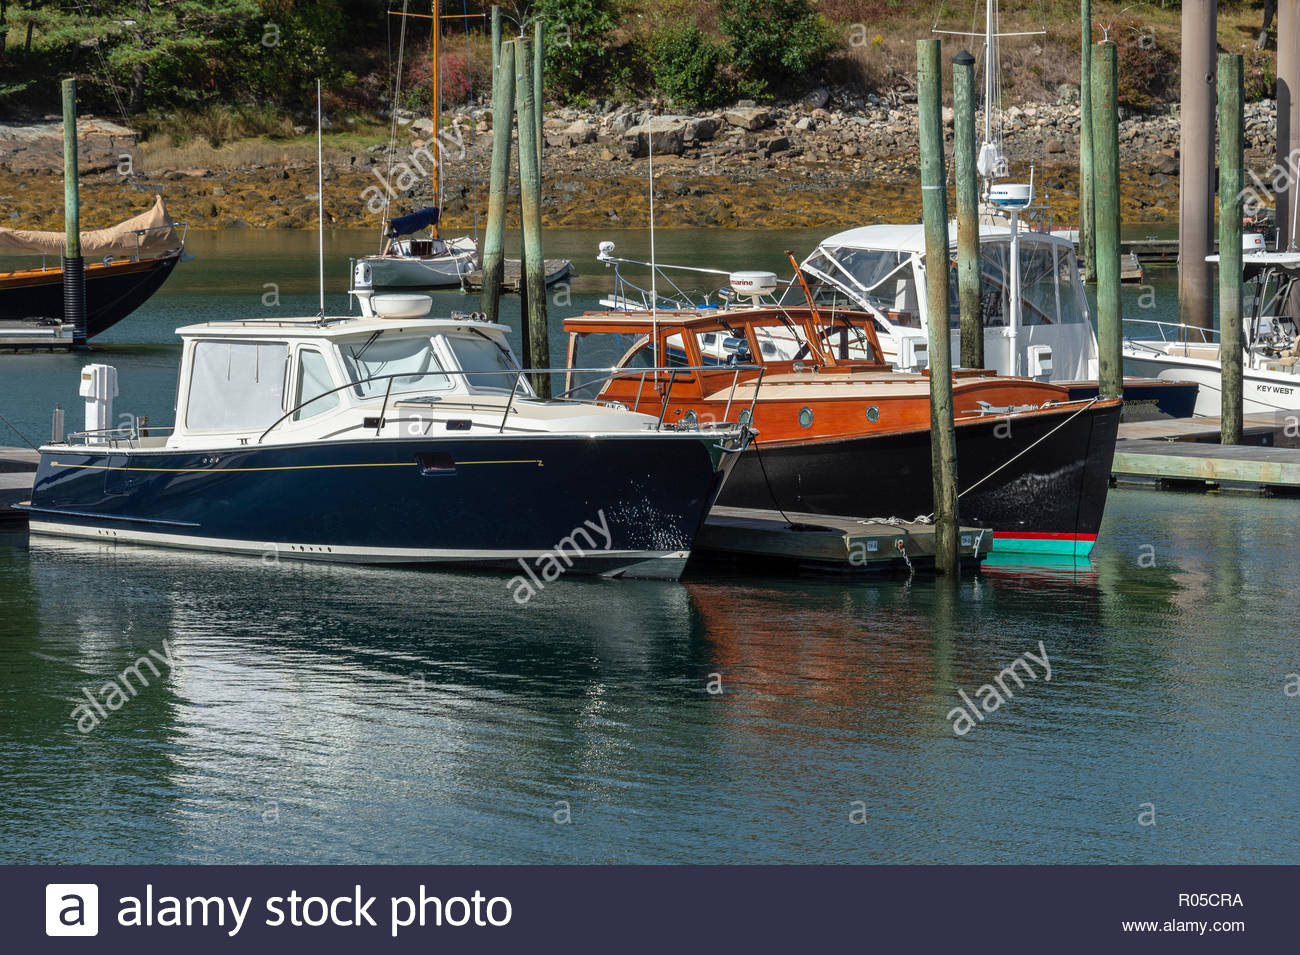 Northeast Harbor, Maine, USA - September 22, 2018: Older and newer style powerboats in adjoining slips in Northeast Harbor on last day of summer - Stock Image